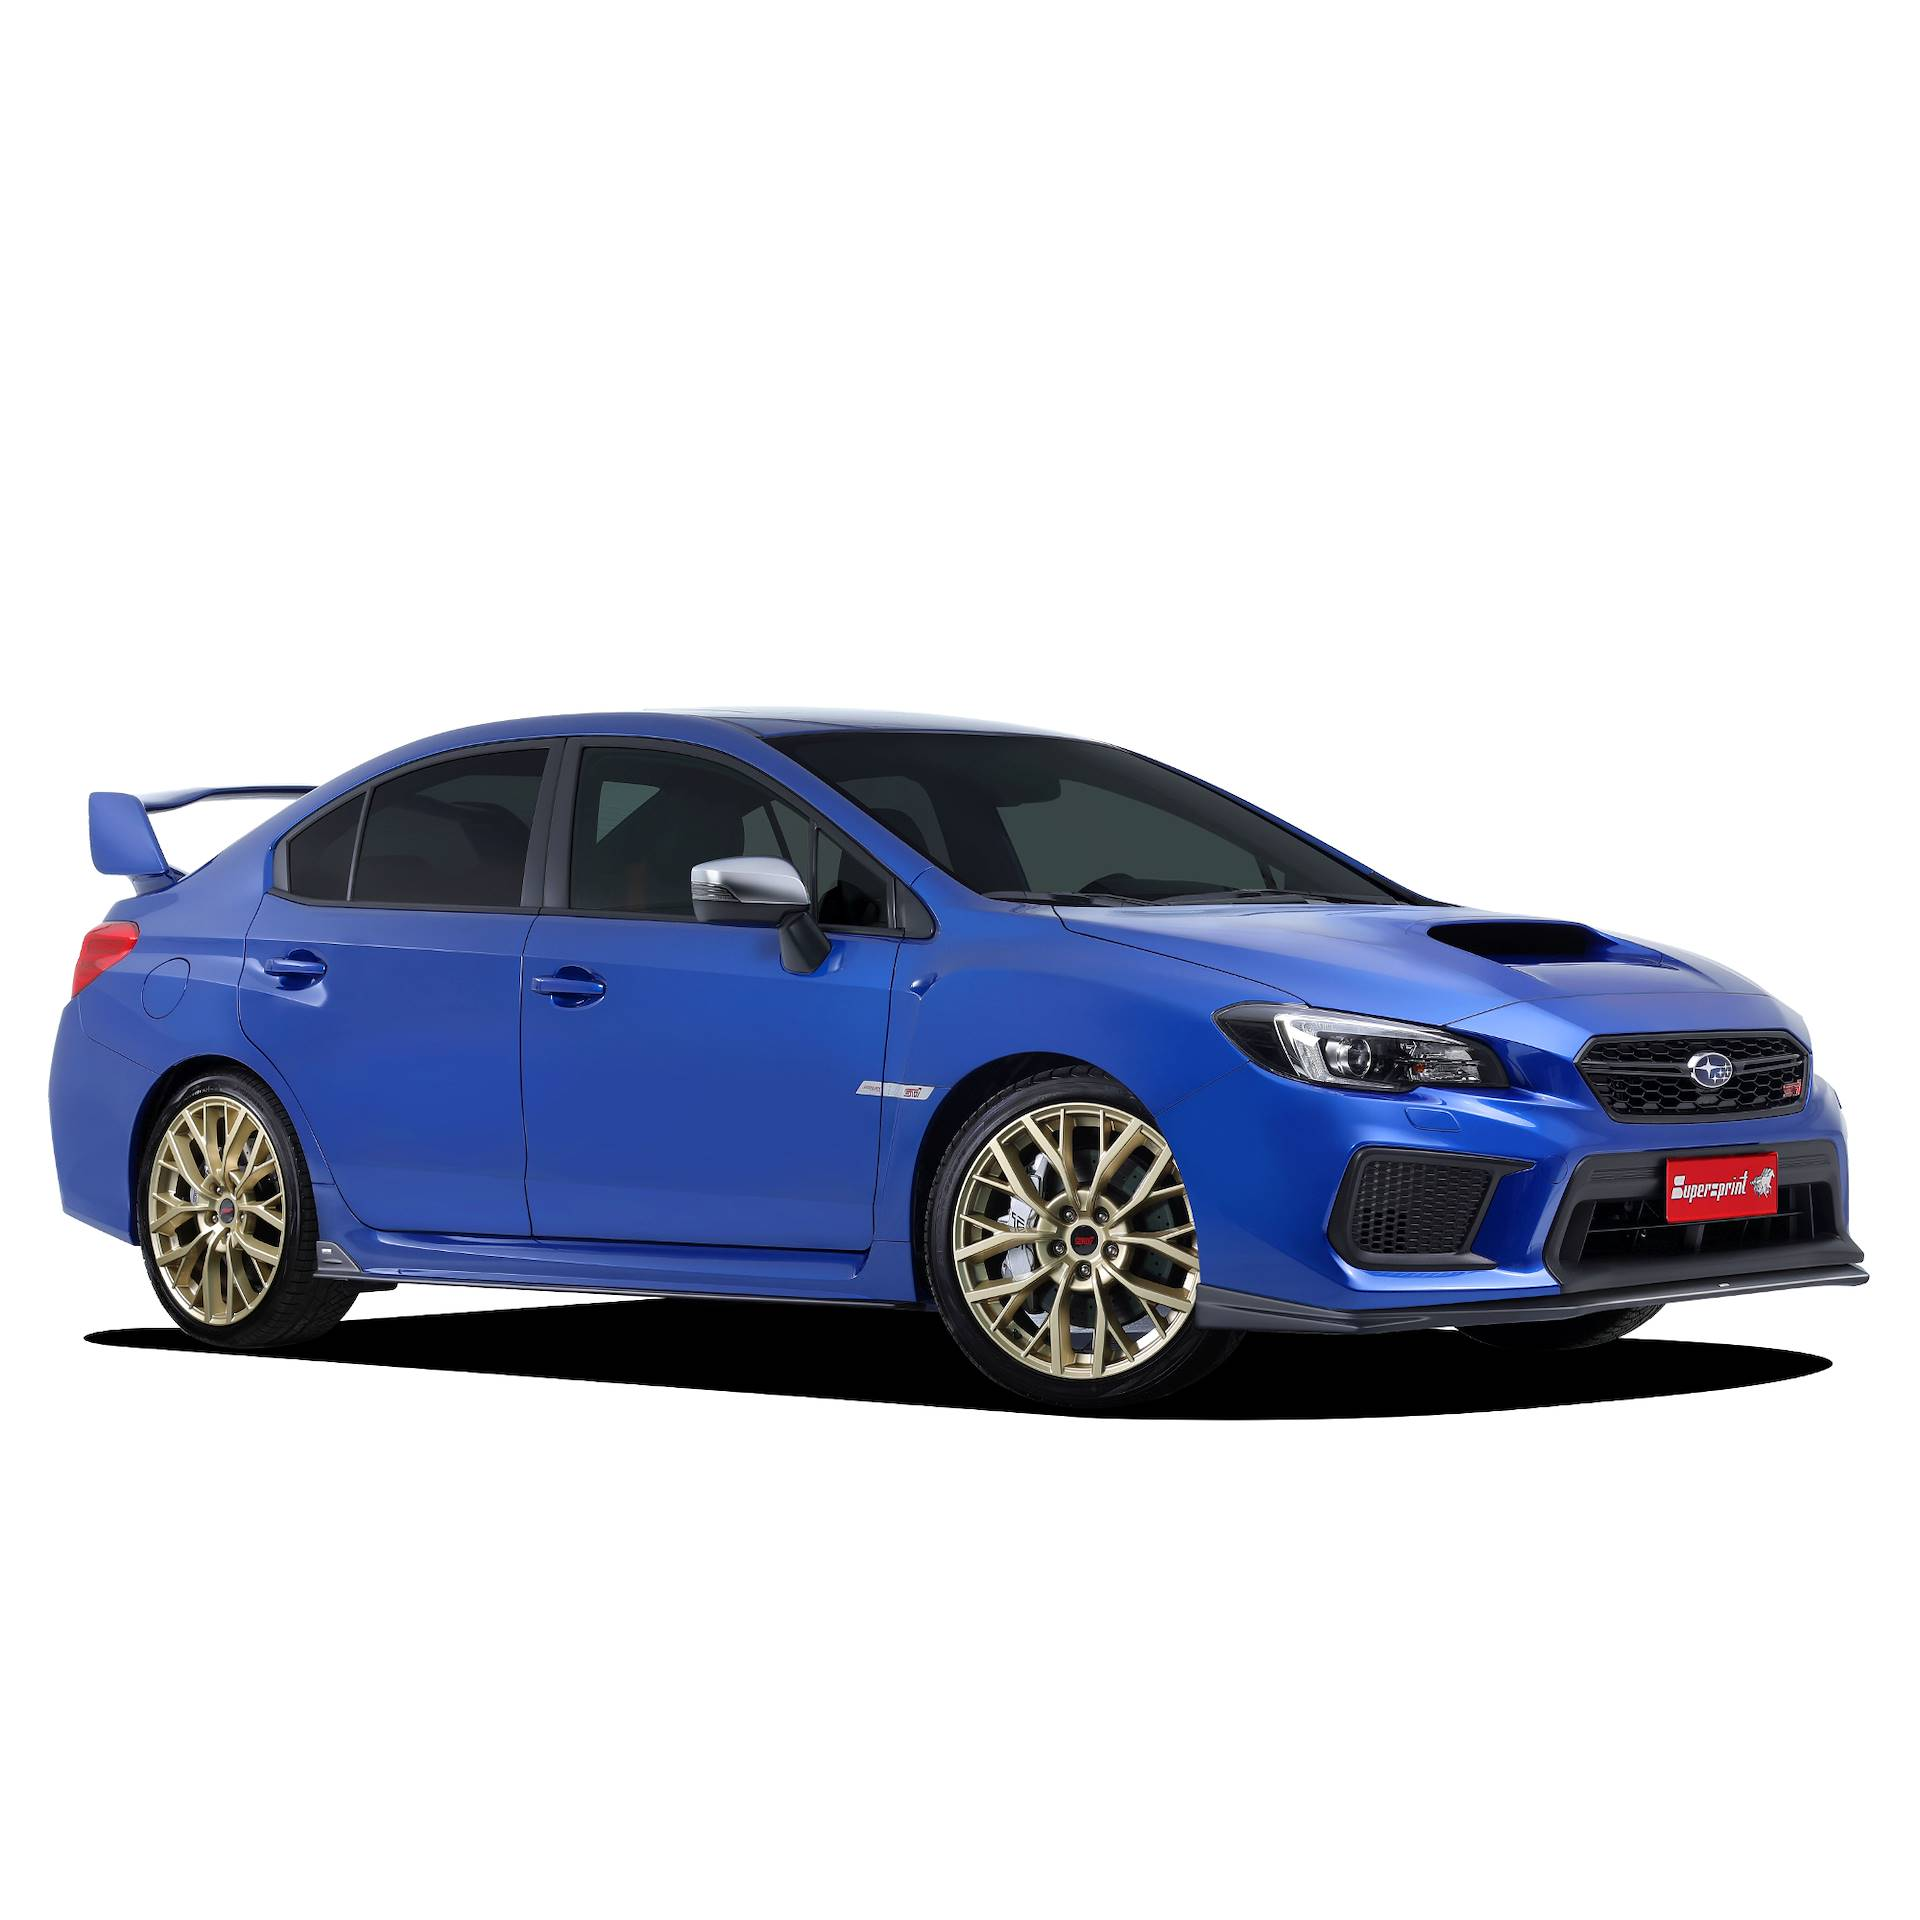 "SUBARU WRX STi ""Legendary Edition"" 2.5i Turbo (300 Hp) 2018"